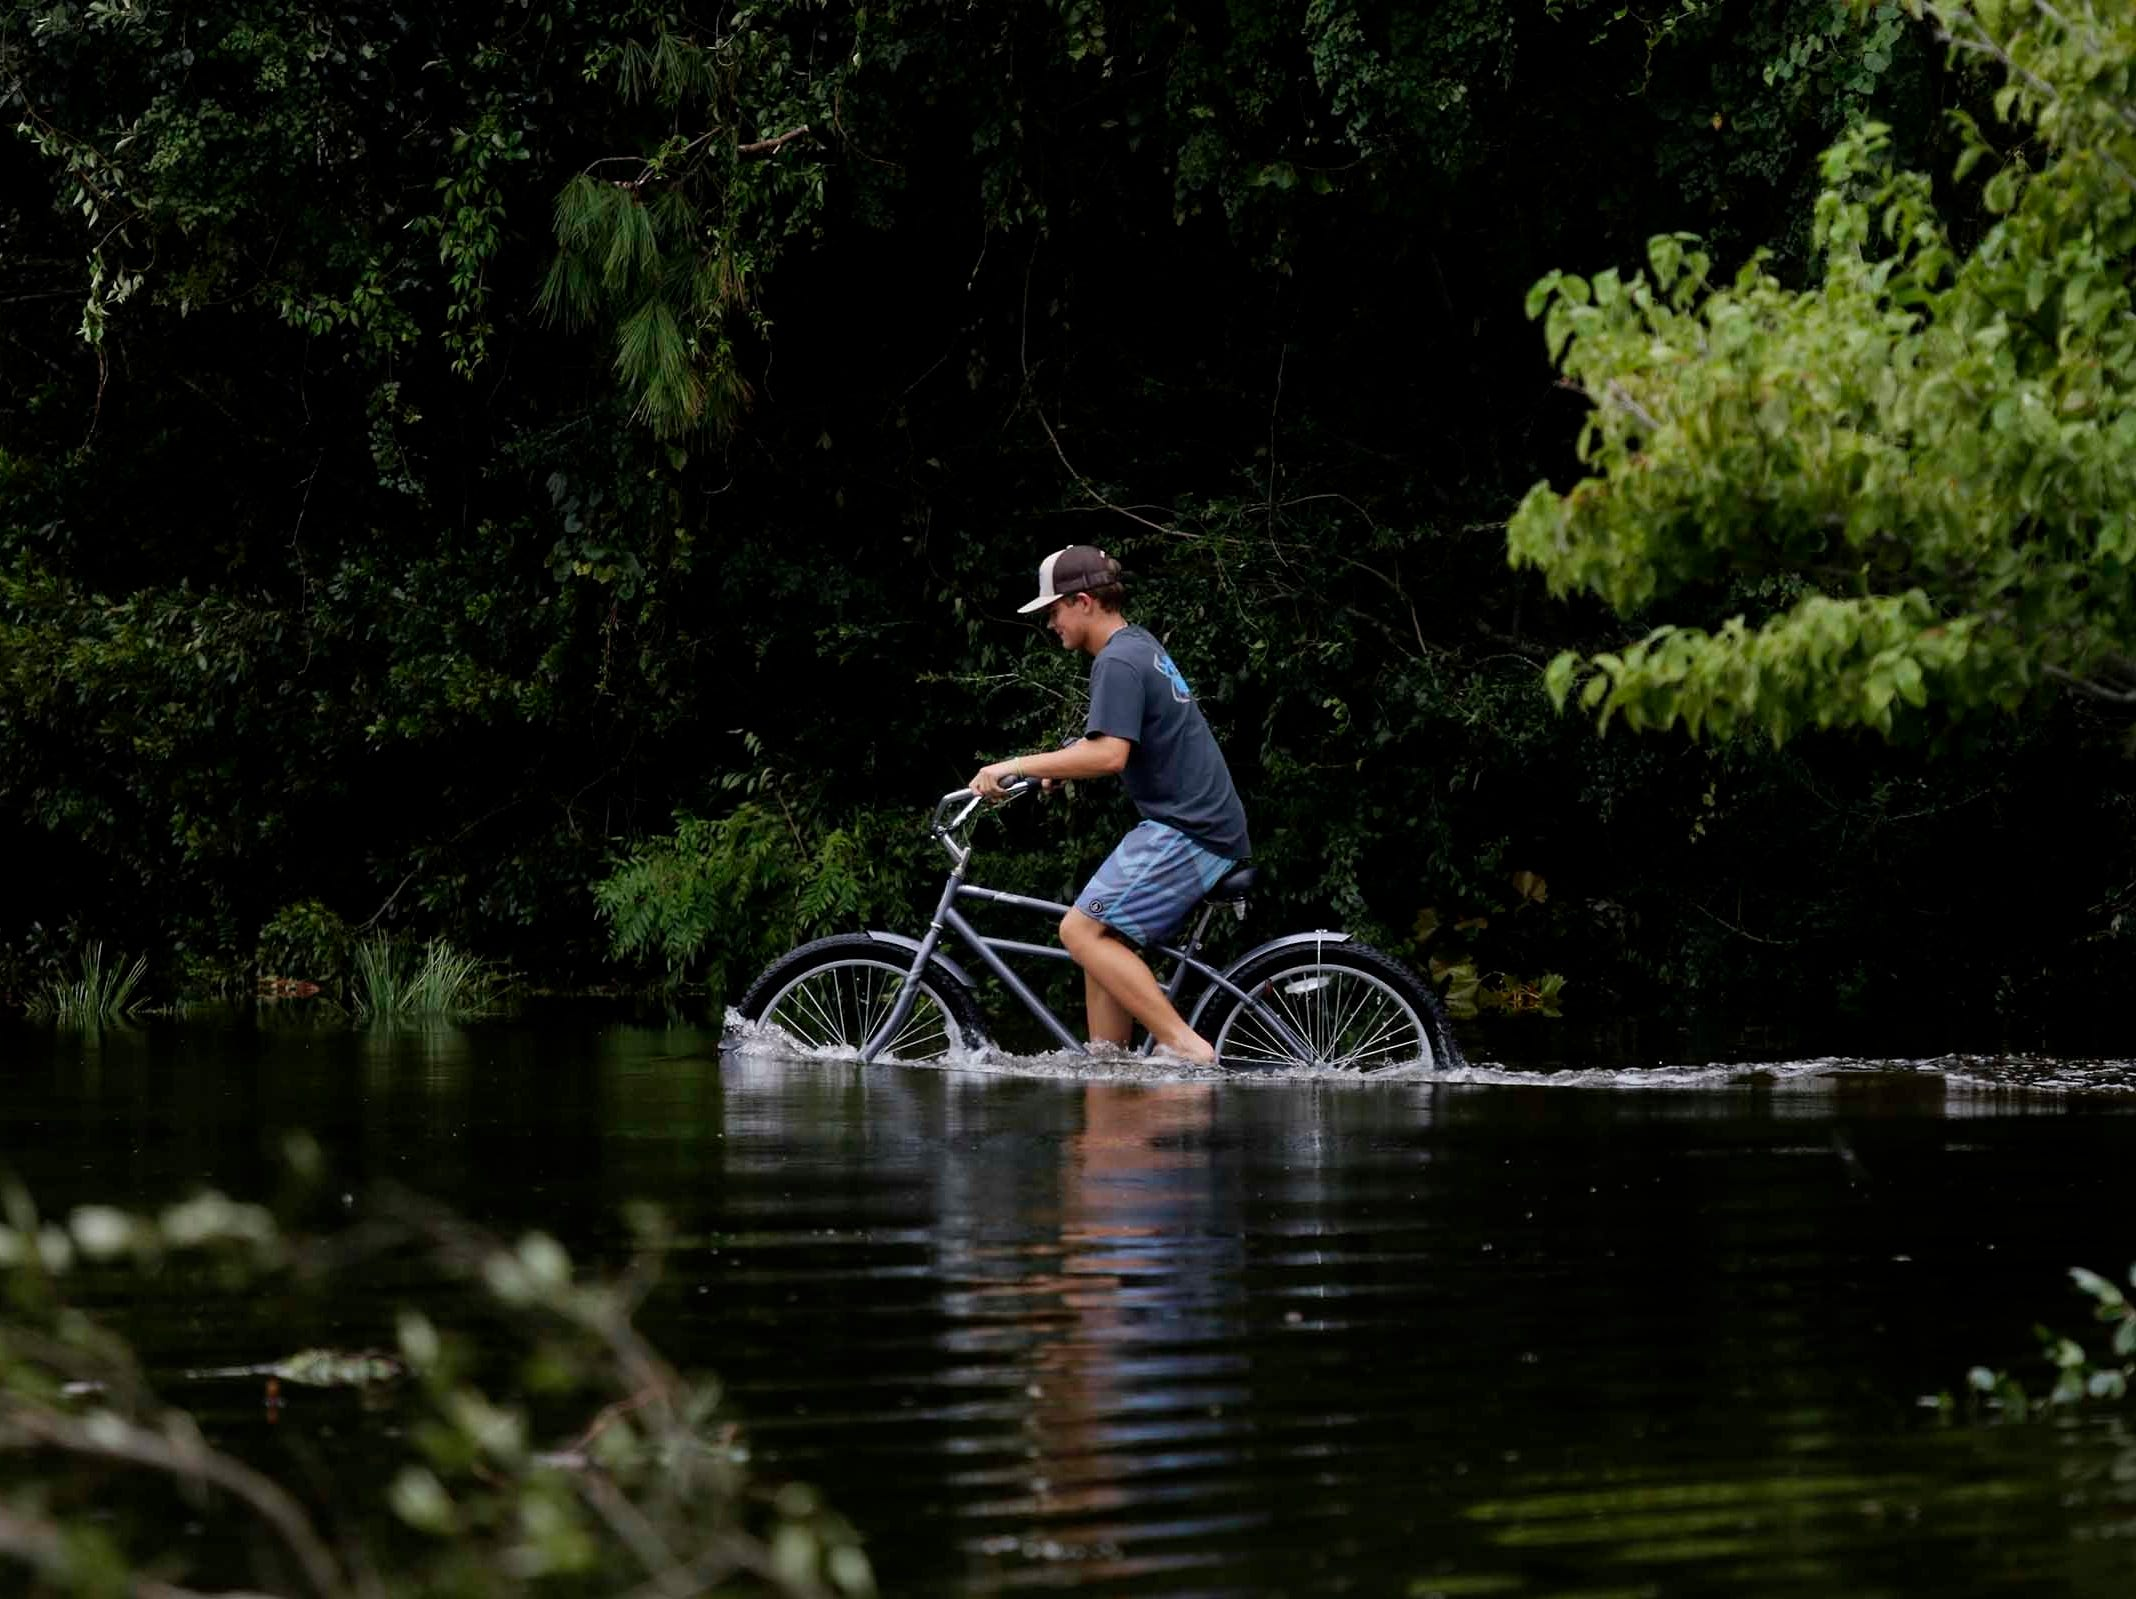 James Register rides his bike on flooded roads after Hurricane Florence hit Emerald Isle N.C.,Sunday, Sept. 16, 2018.